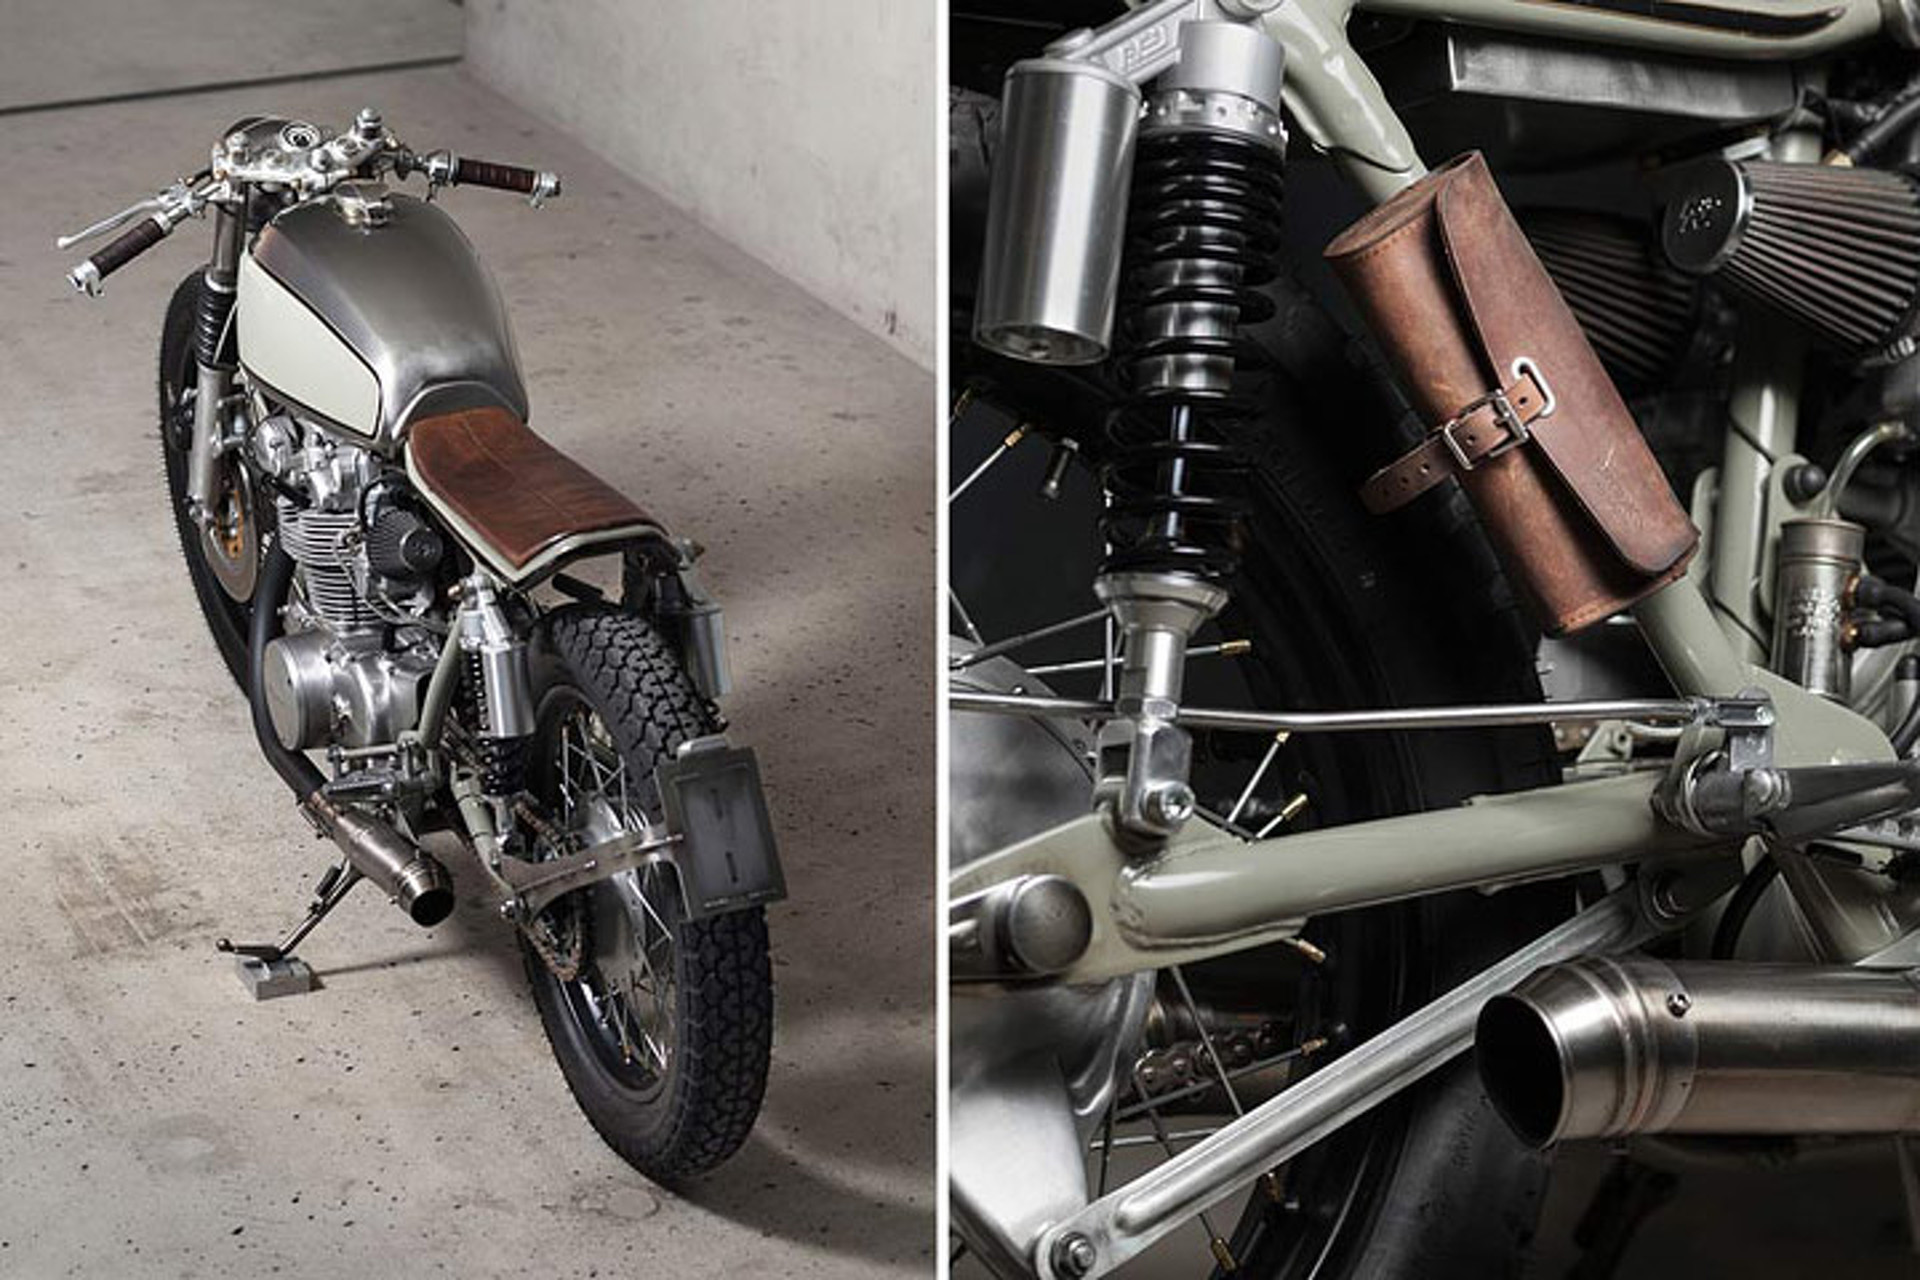 gave this honda cb450 new life and a new look, Wiring diagram